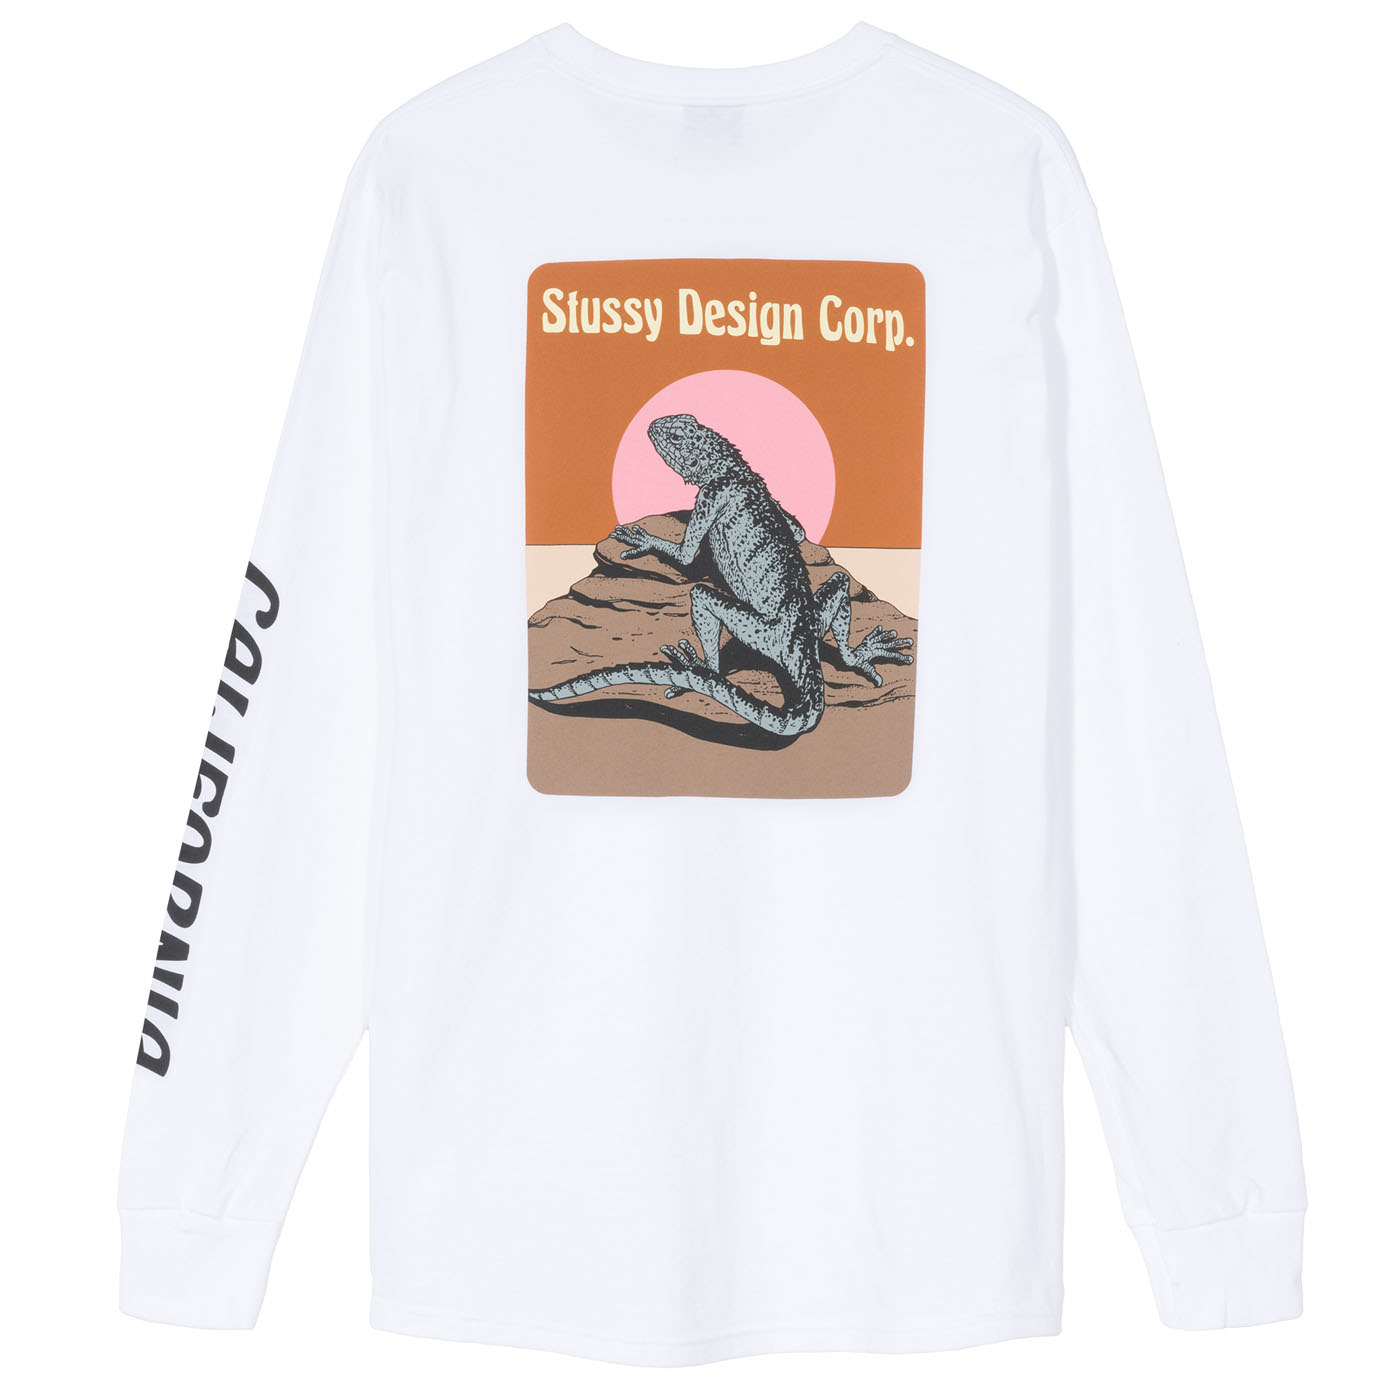 Stussy Extra Fly Gear - Products - 36.jpg